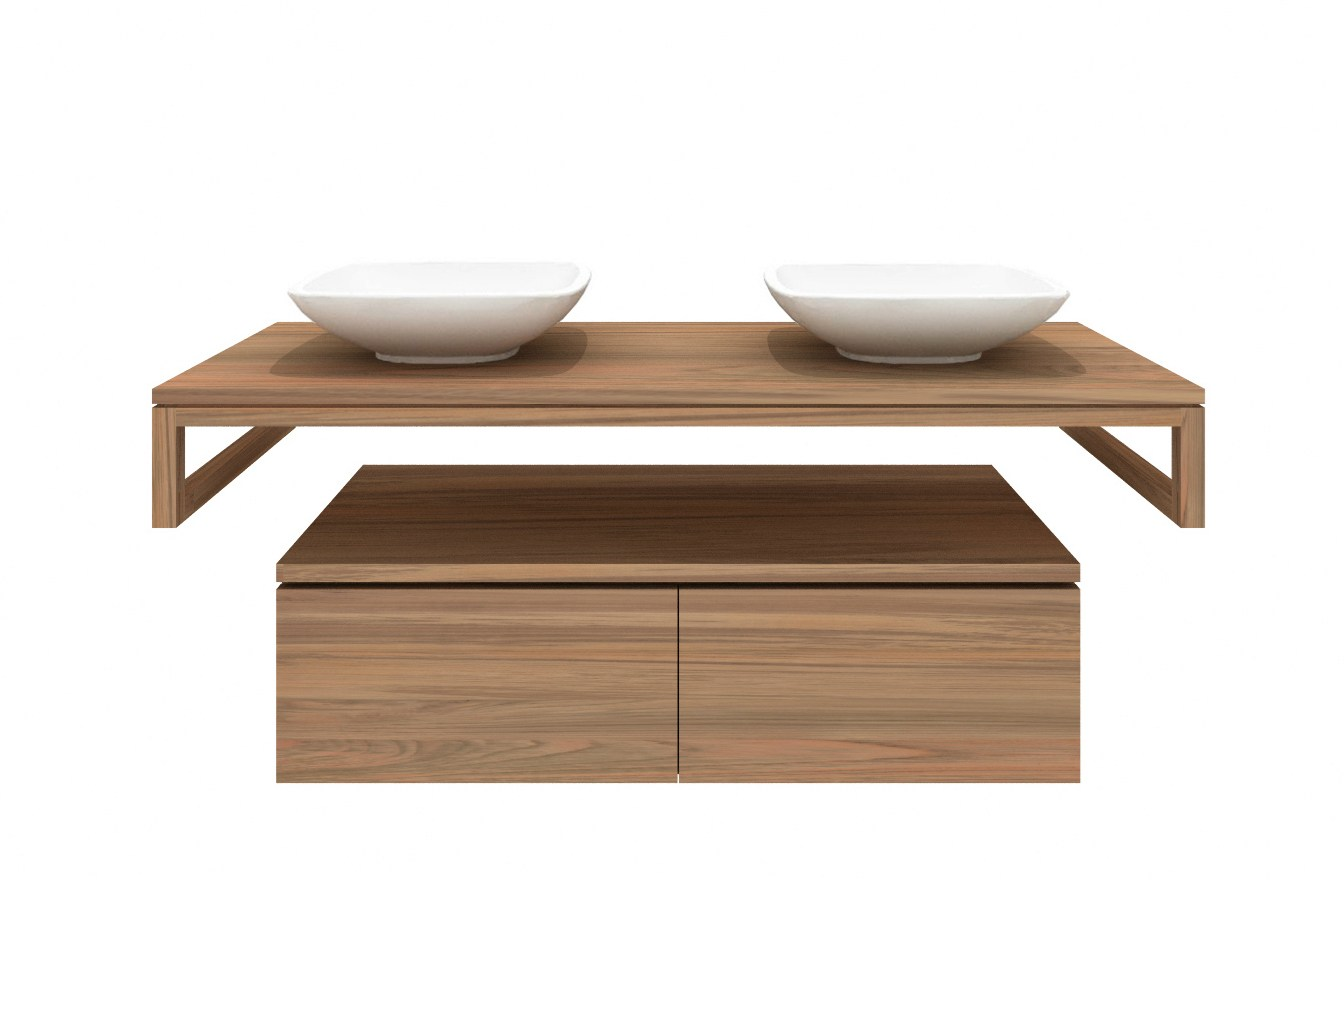 Teak fellow meuble sous vasque double by ethnicraft for Meuble sous vasque double